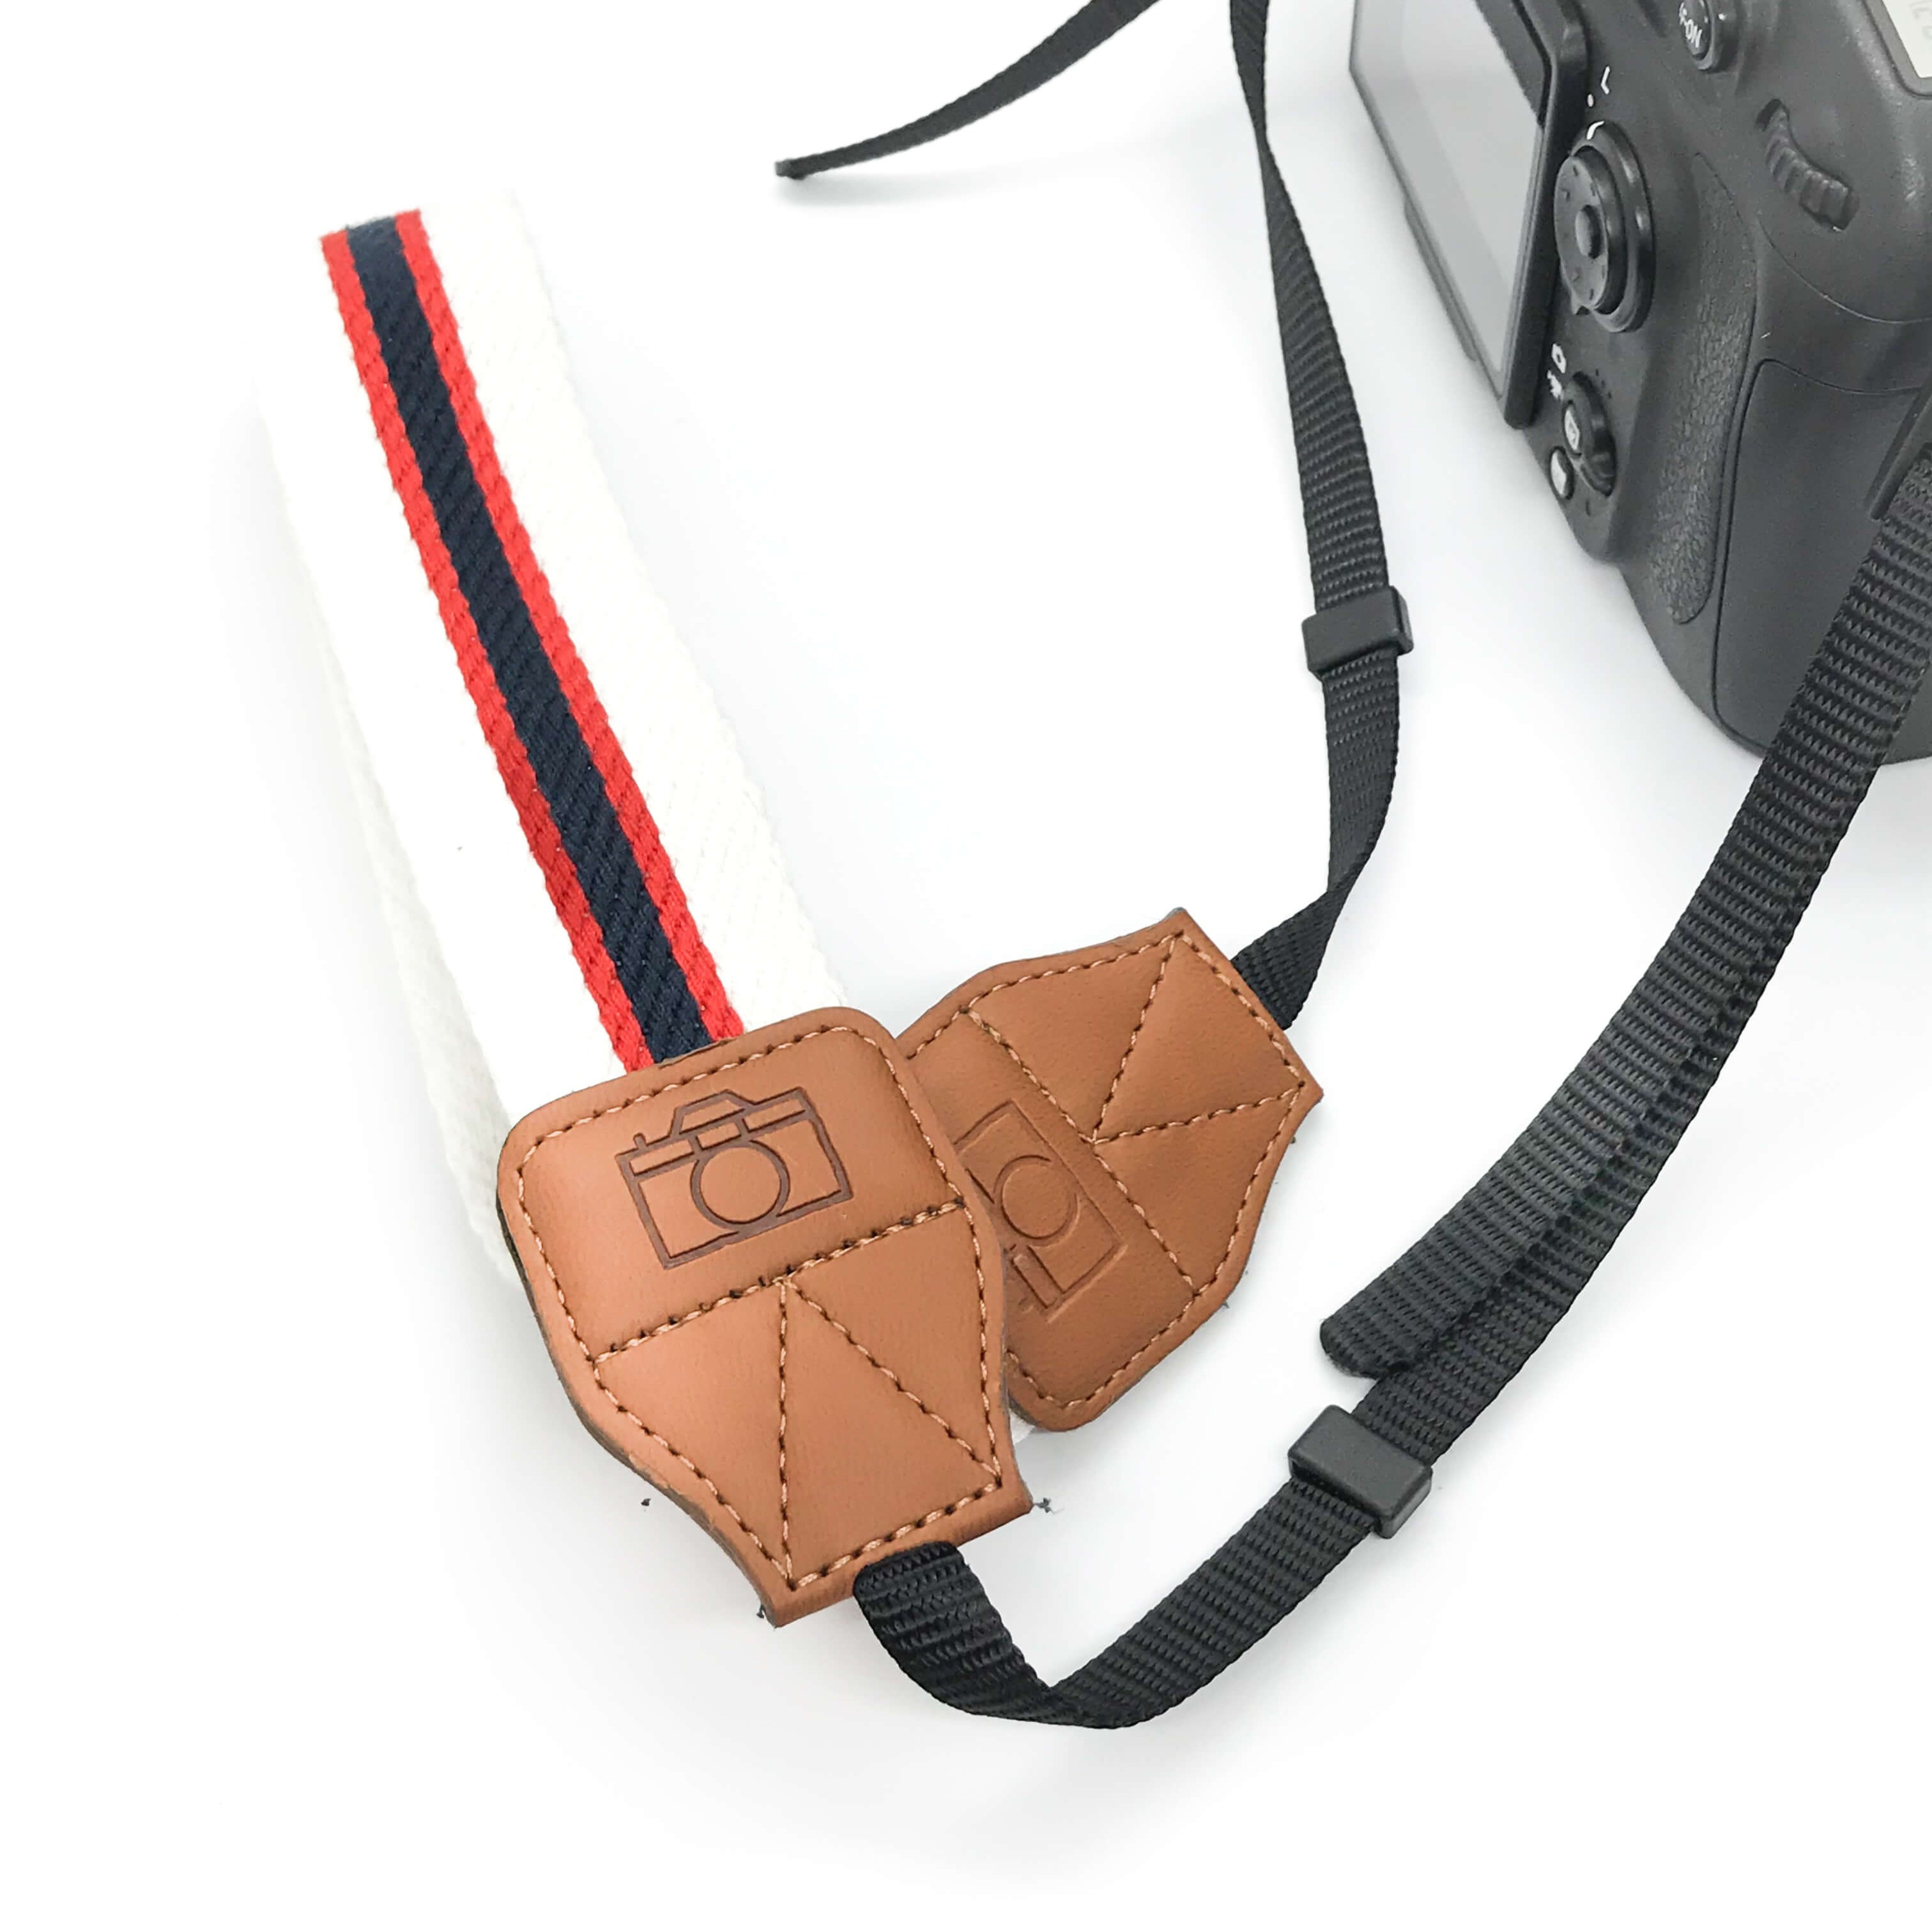 Black Red and White Camera strap on white background with camera